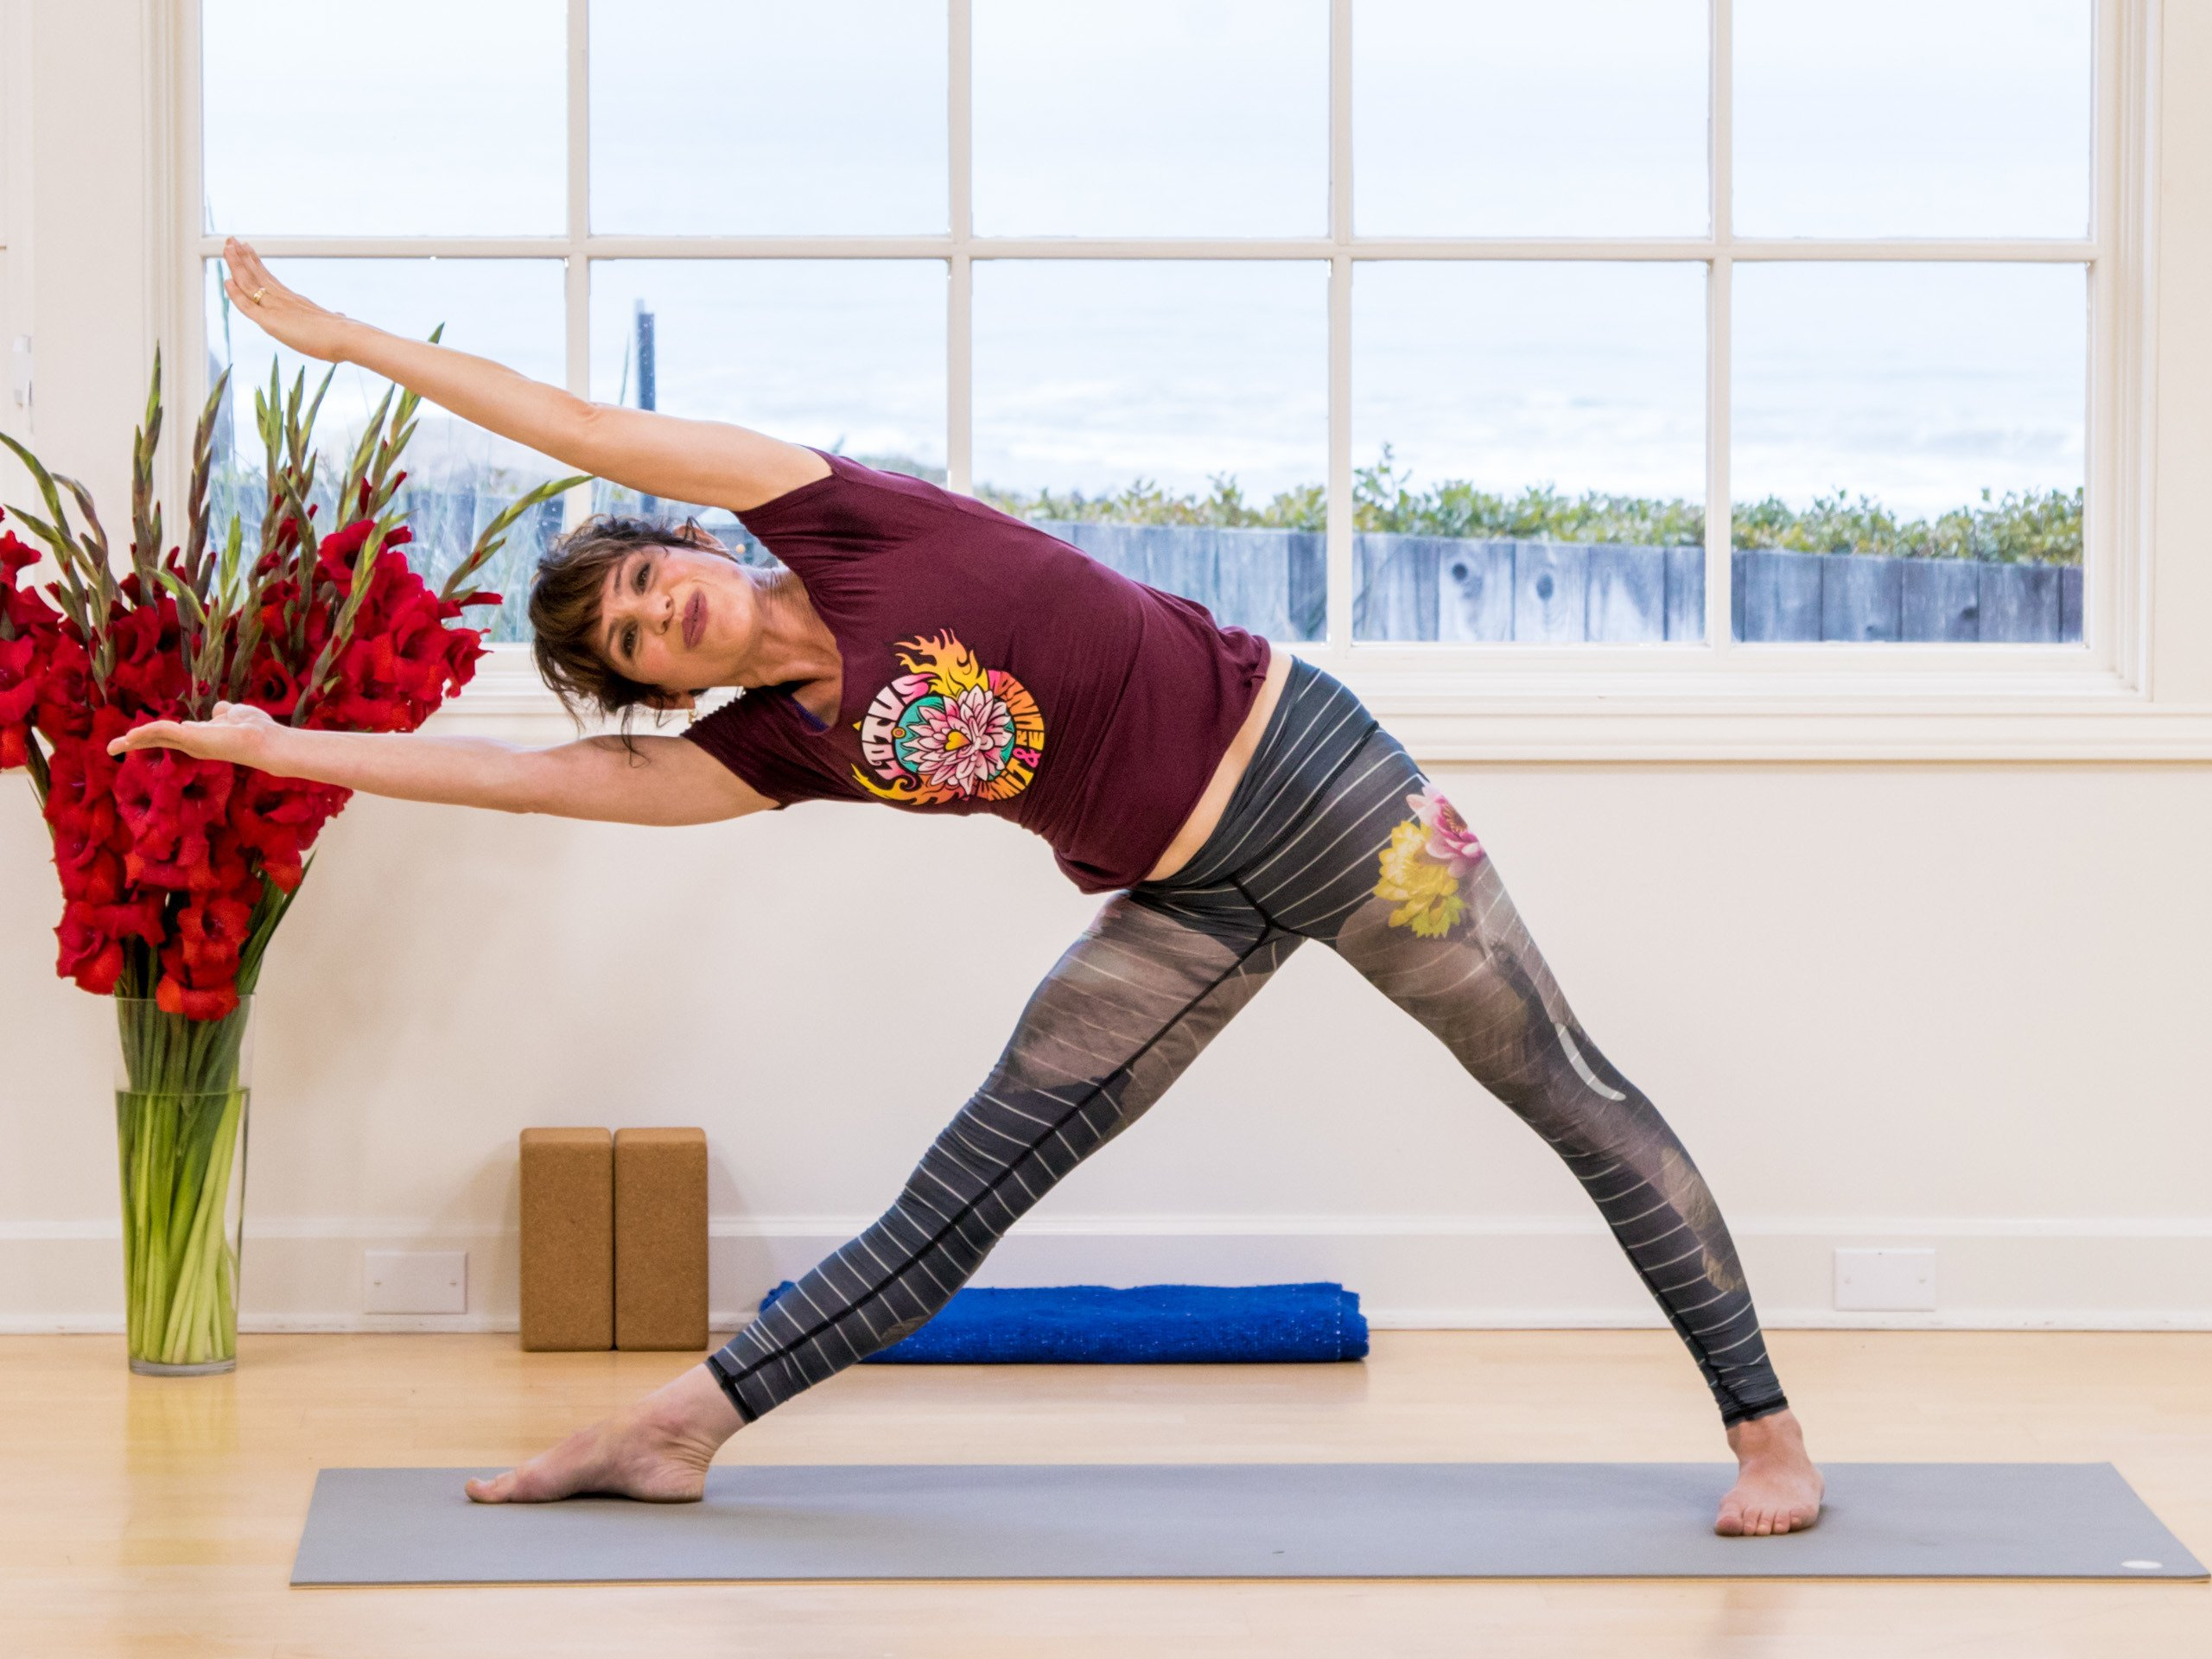 Watch The Yoga Flow Show - Season 5 | Prime Video